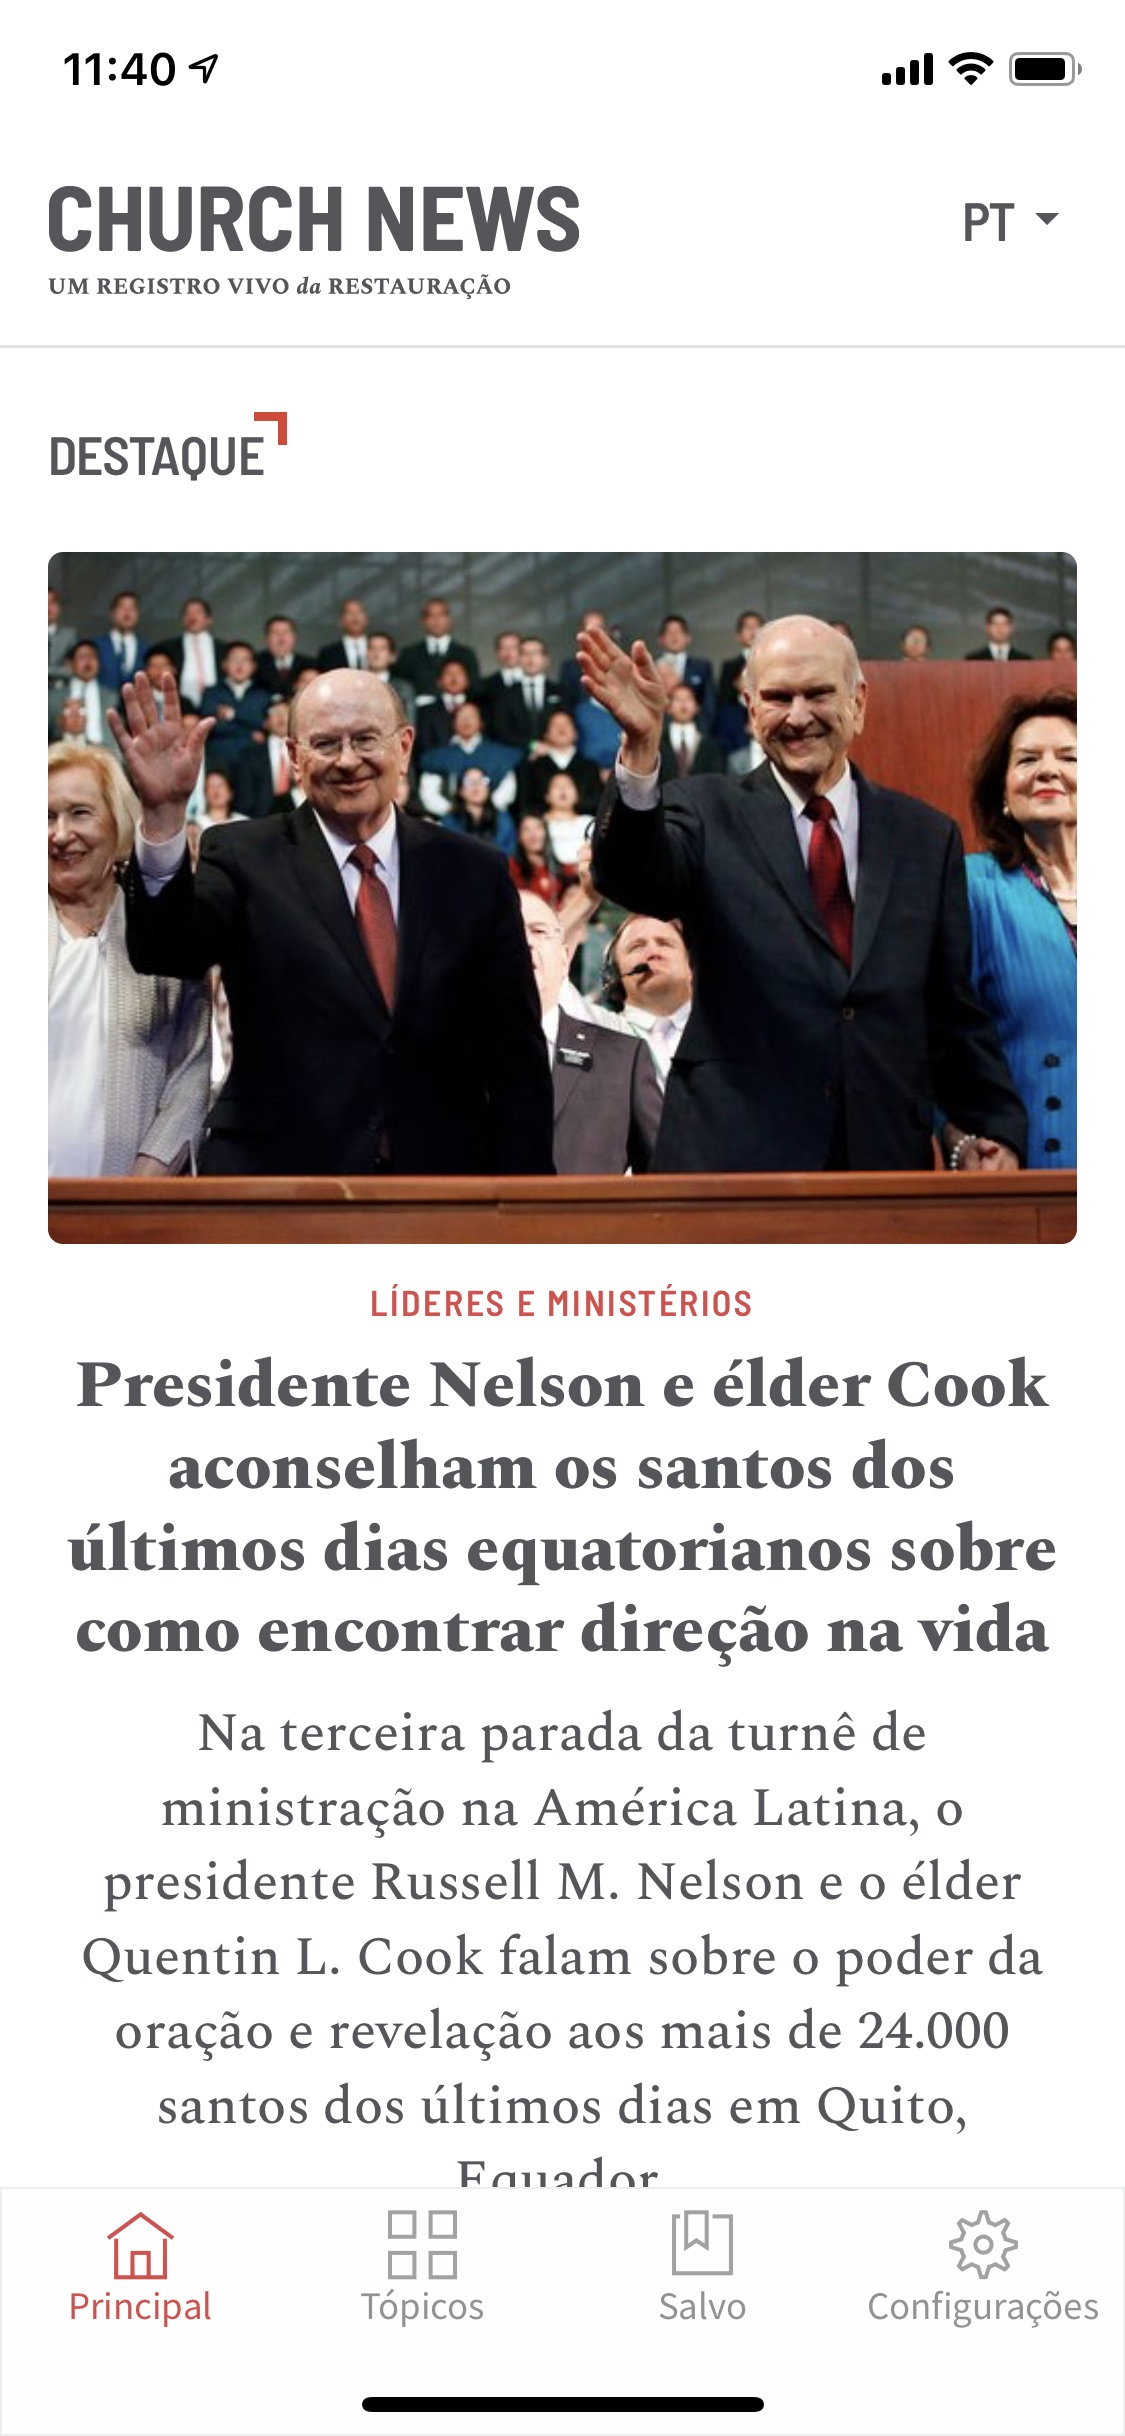 This is a screenshot of the Portuguese version of the Church News app.